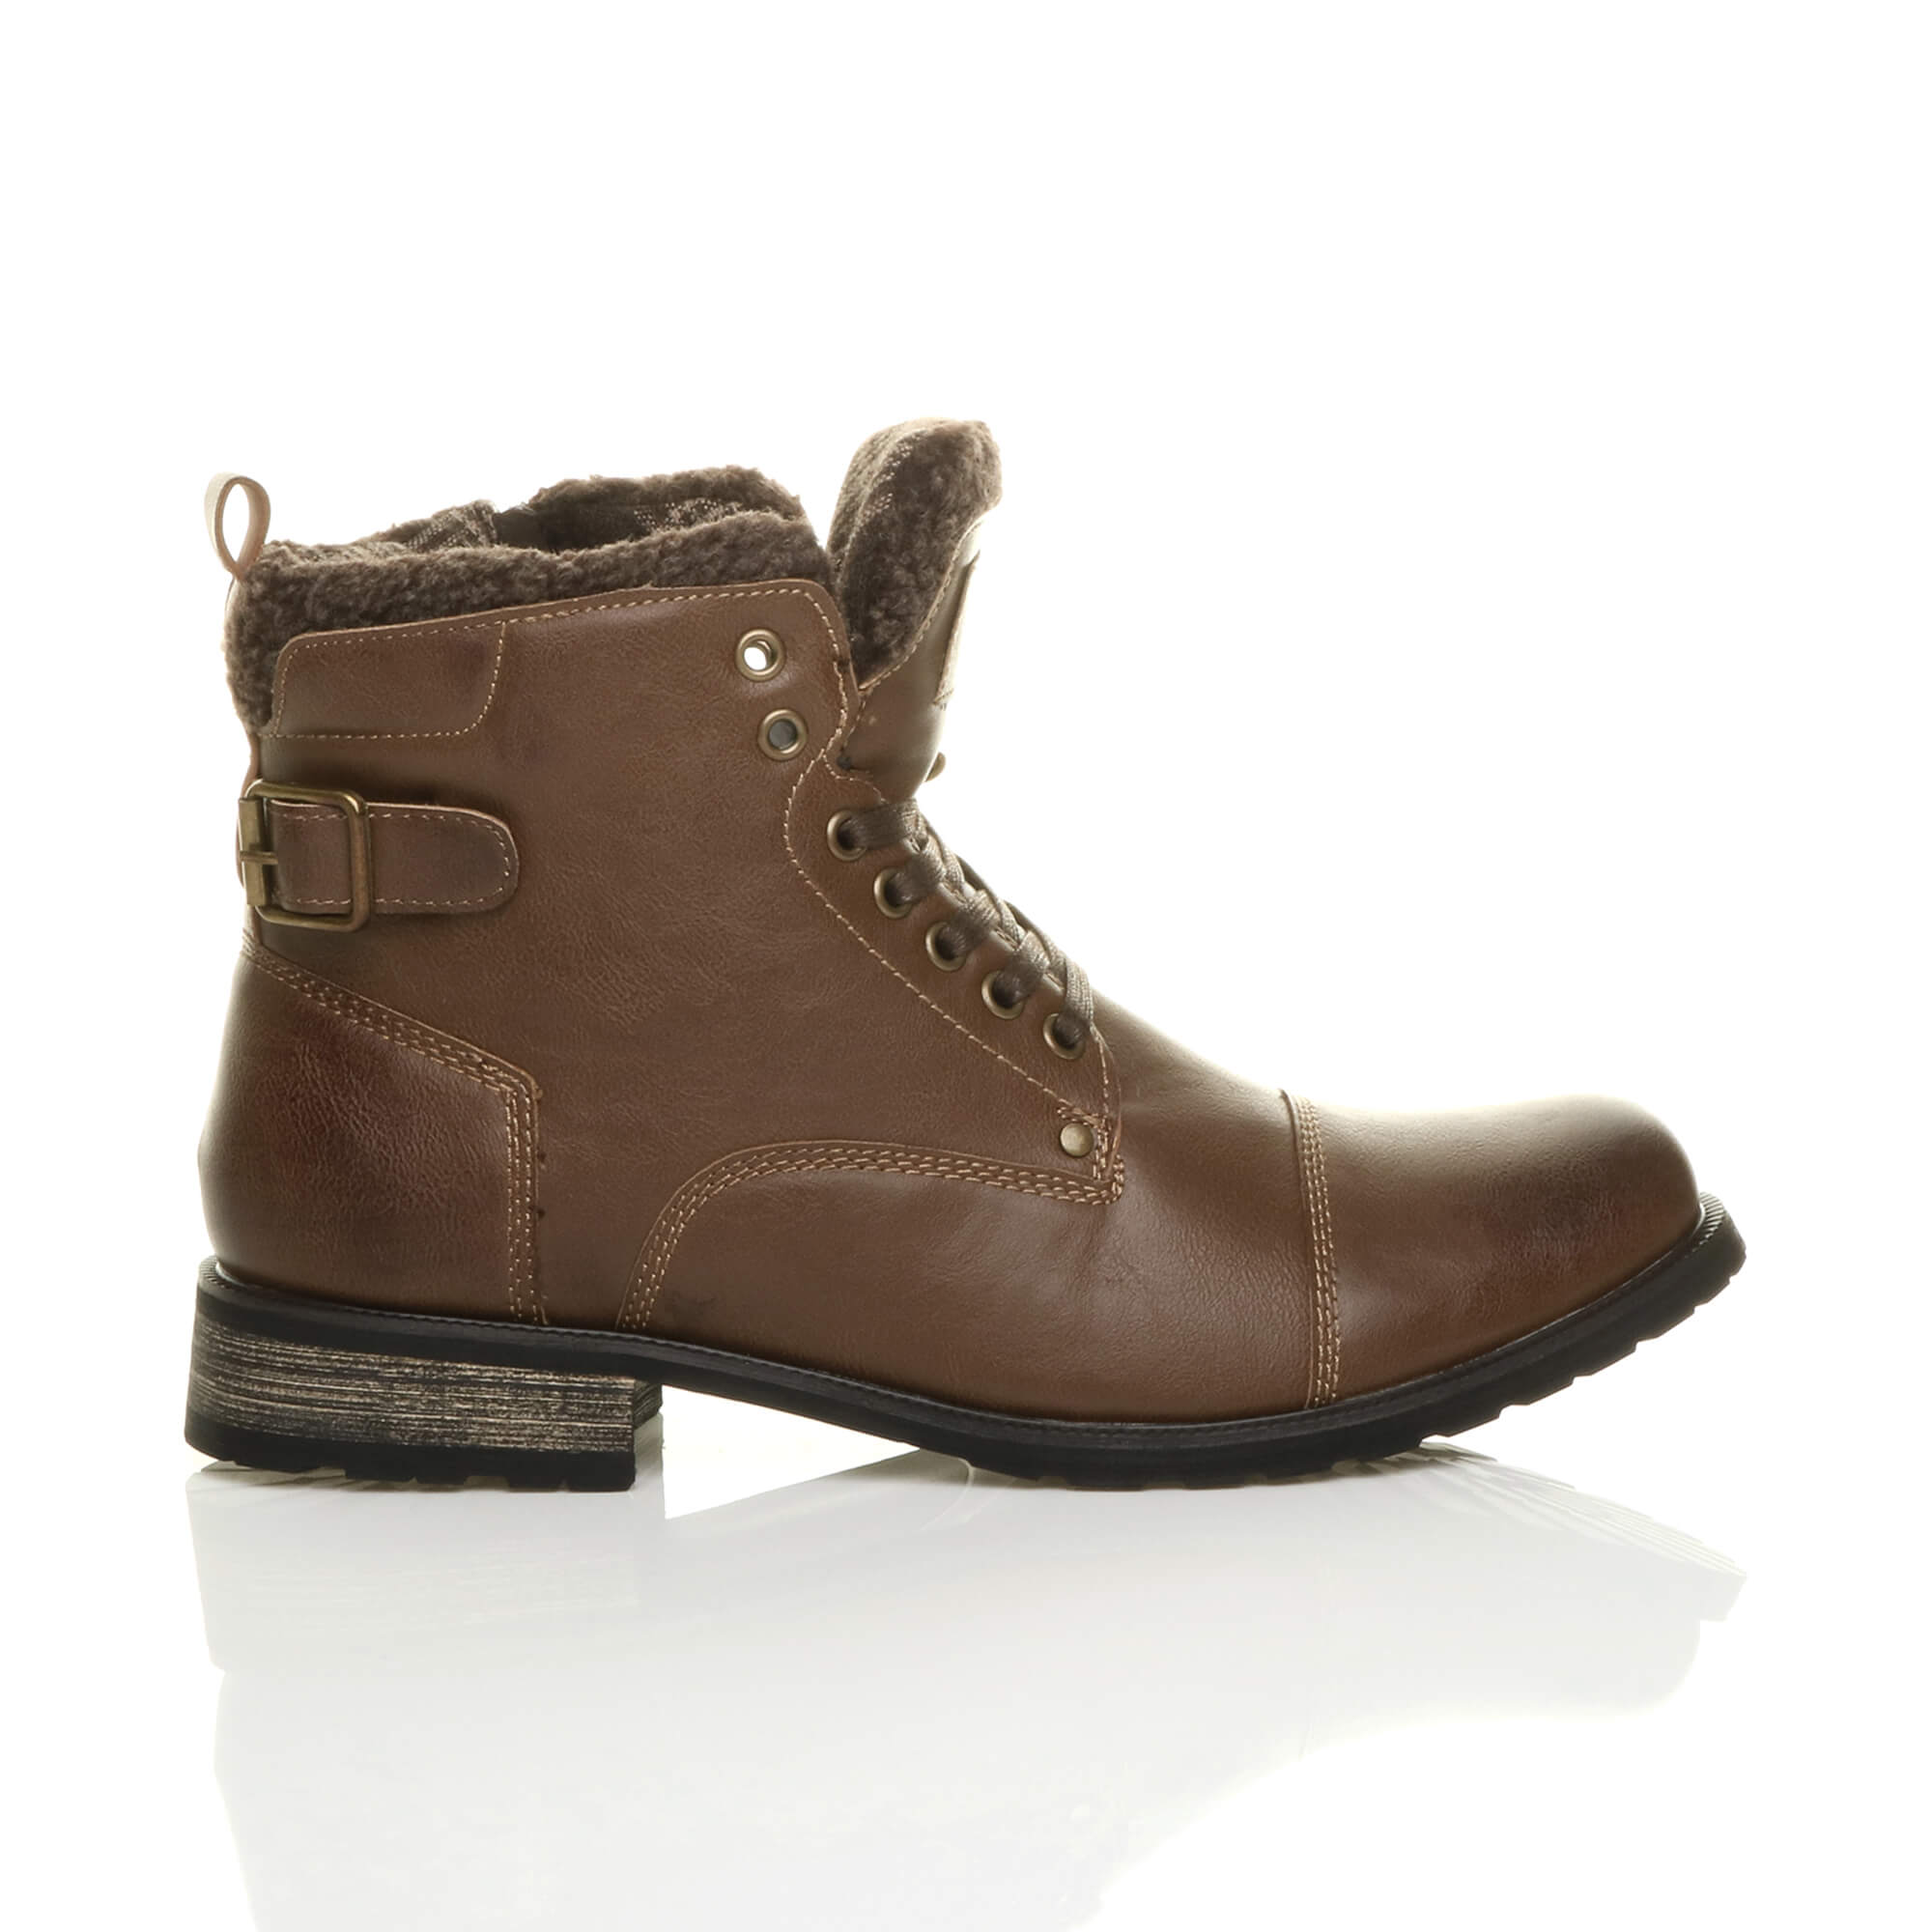 MENS-LACE-UP-ZIP-FUR-TRIM-SMART-WORK-WINTER-ARMY-MILITARY-BIKER-ANKLE-BOOTS-SIZE thumbnail 11